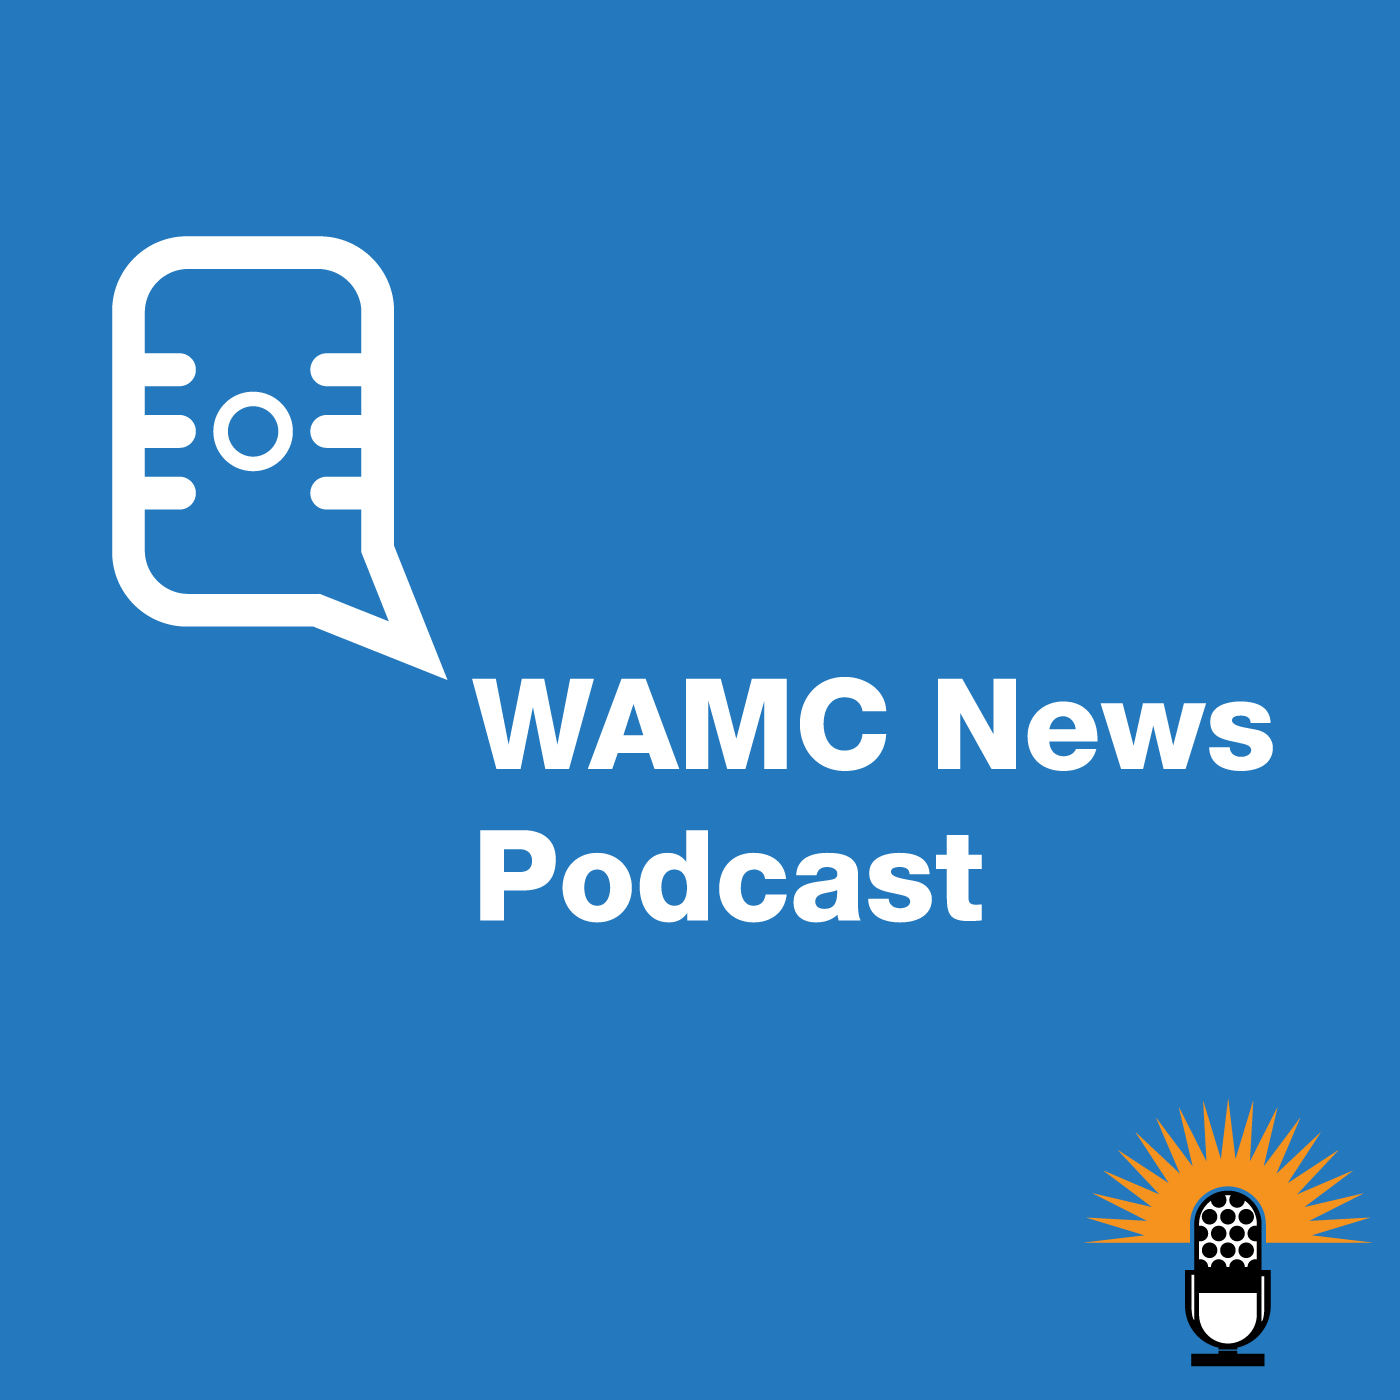 WAMC Podcasts